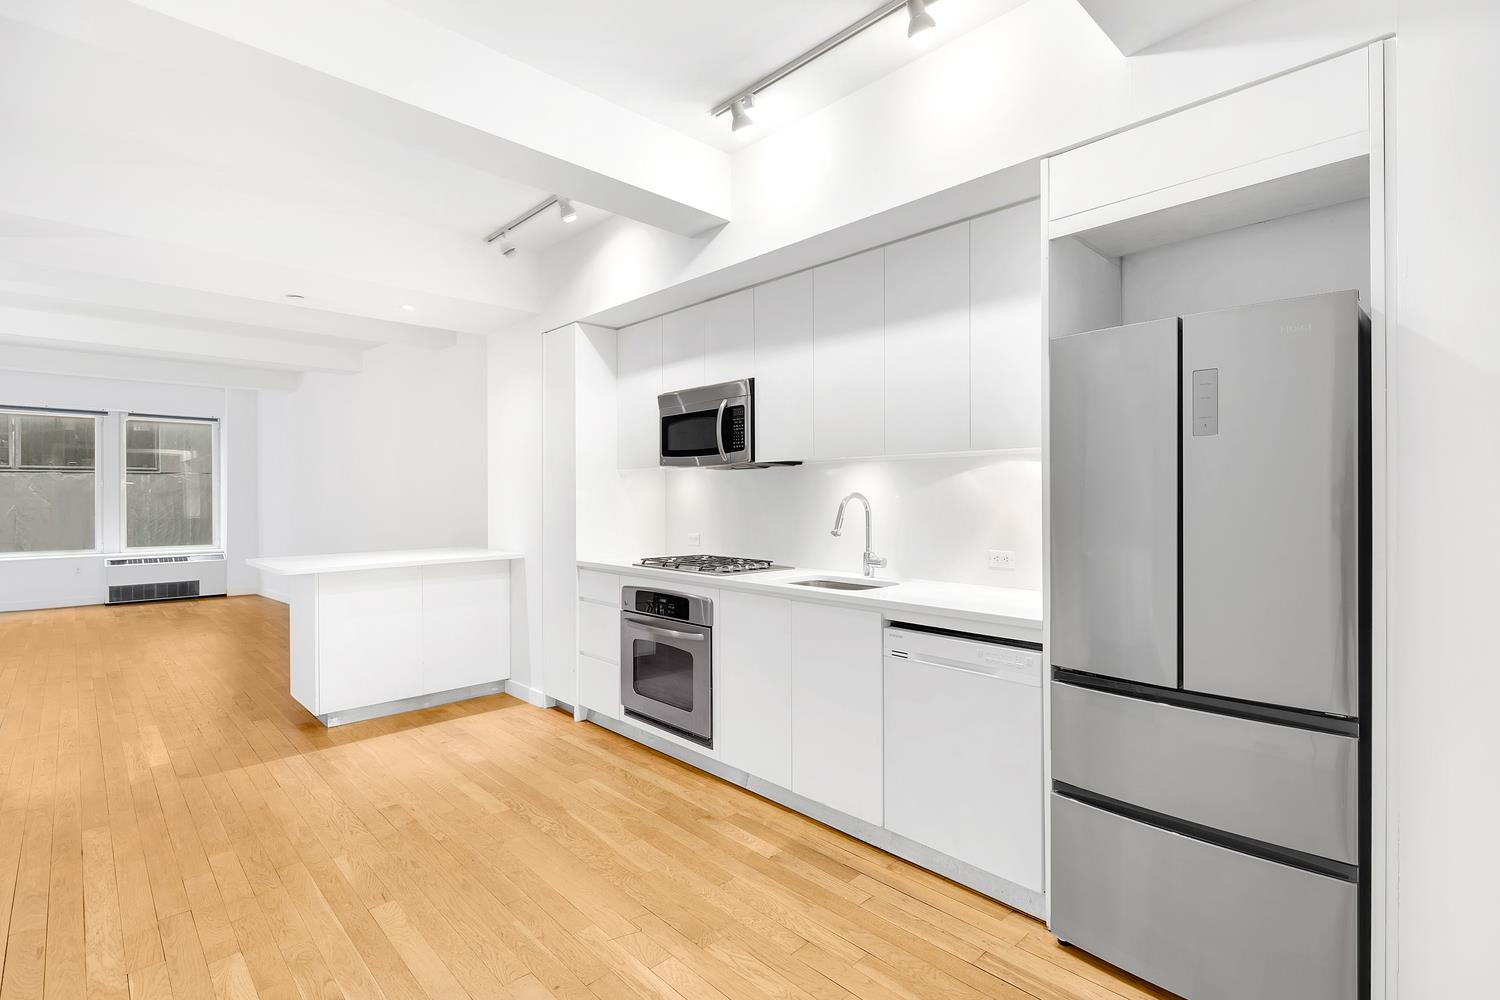 ENJOY THIS STUNNING ONE BEDROOM WITH HOME OFFICE/1100SF FOR $3875.00 PER MONTH!!!.... HUGE 4-Piece Bath. A FABULOUS VALUE...Extra large double paned insulated windows, Solid white oak hardwood floors, Modern open chef's kitchen with white glacier counter tops and custom appliances. The Bath is equipped with Kohler and Watermark fixtures. Up to 9-6 coffered ceilings. Verizon FiOs equipped, phone and cable ready. Elfa closet systems. Building amenities include 24 hour doorman / concierge, be@spot Sky Lounge featuring state-of-the-art entertainment center with billiards table, kitchenette, and an indoor fireplace. Also, the be@spot landscaped outdoor Sky Terrace features a barbeque grill, wet bar and an outdoor fireplace. Rooftop fitness center features Life Fitness equipment with cable TV and Rooftop Laundry Lounge. Located in the heart of the Lower Manhattan Residential Renaissance. Walking distance to WHOLE FOODS, Tiffany's, Tumi, Hermes. 13 train lines. 10 MINUTE WALK TO TRIBECA...A MUST SEE!!!